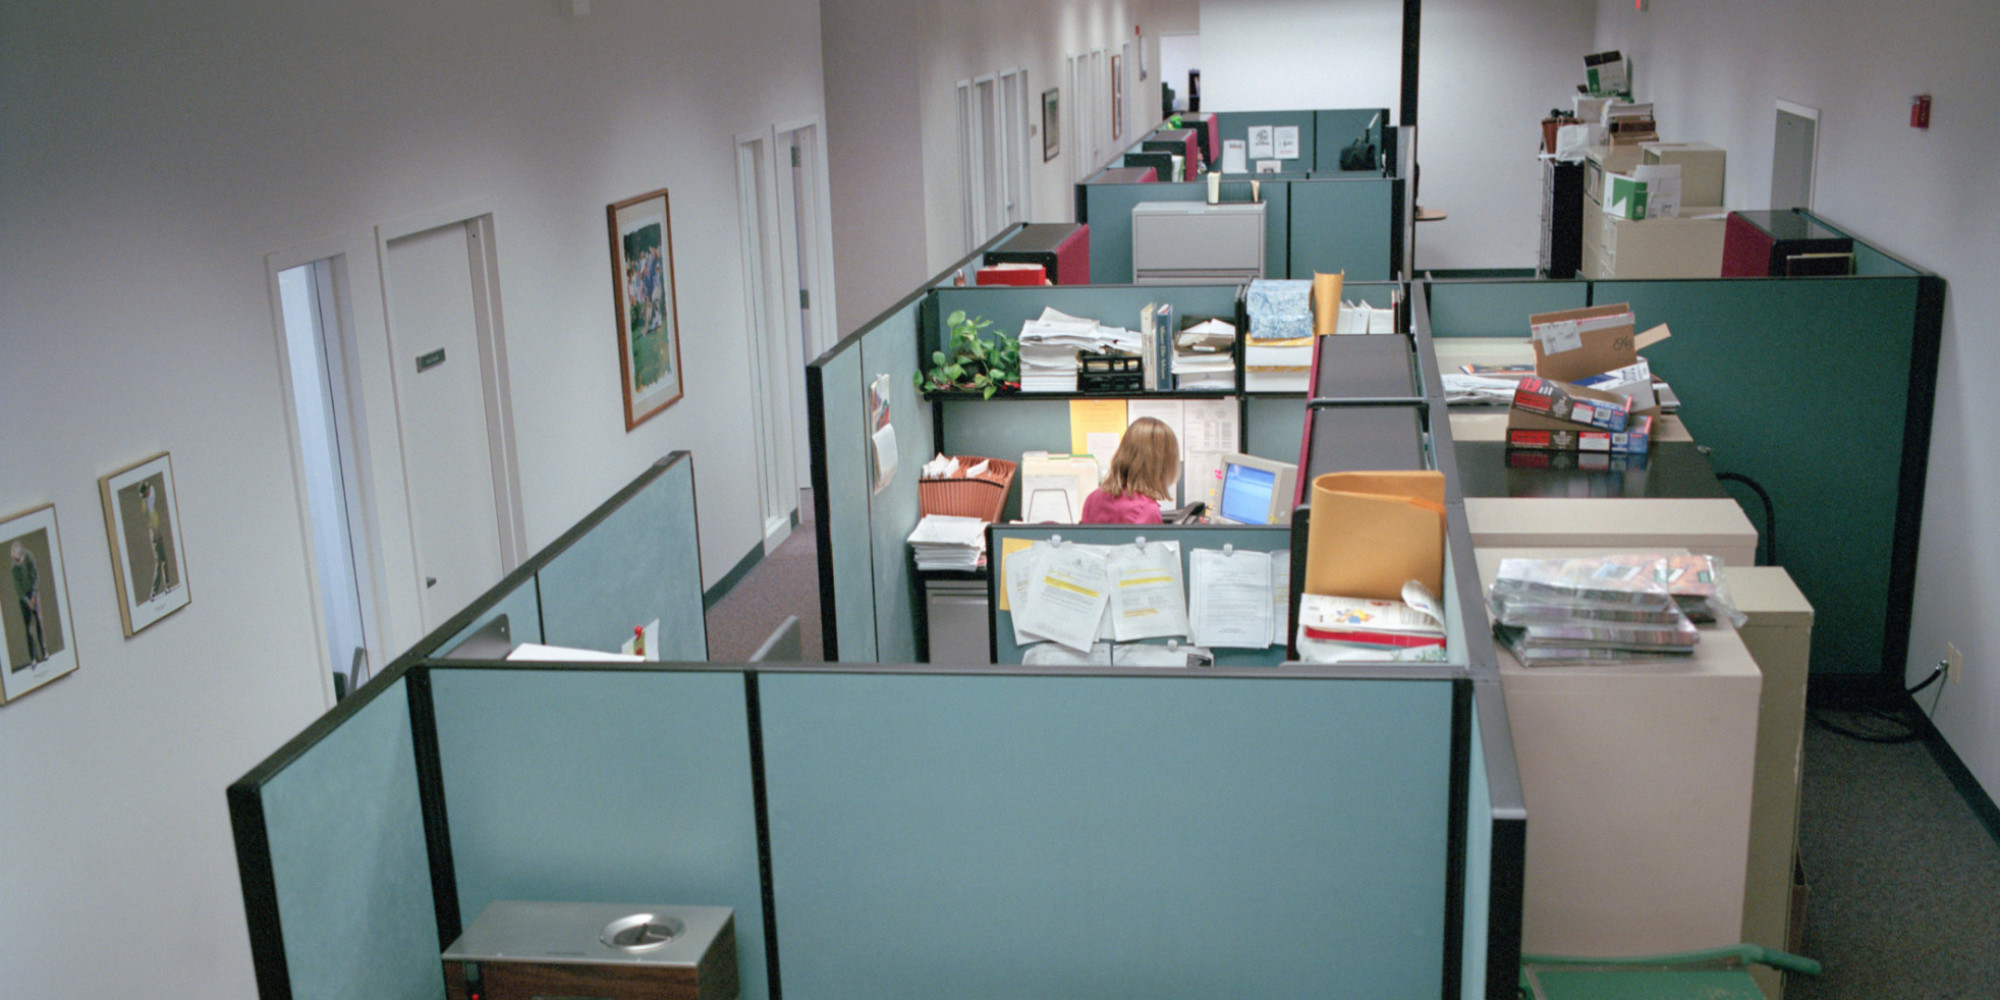 cubicle office space. cubicle office space s